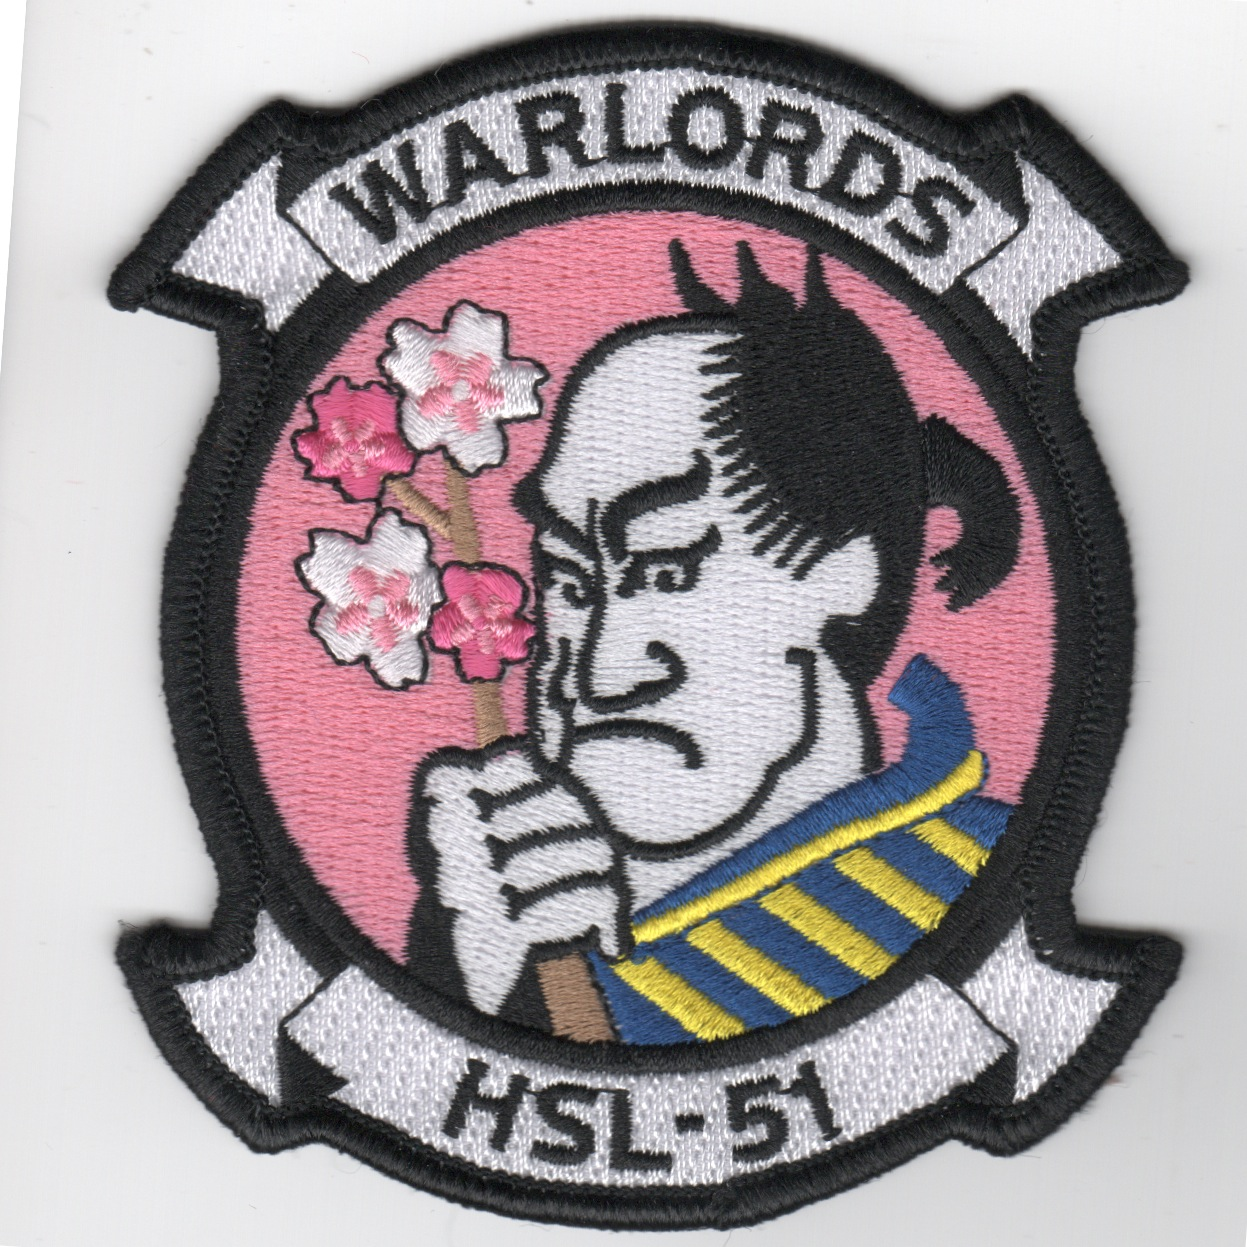 HSL-51 'Warlords' Squadron Patch (Pink)